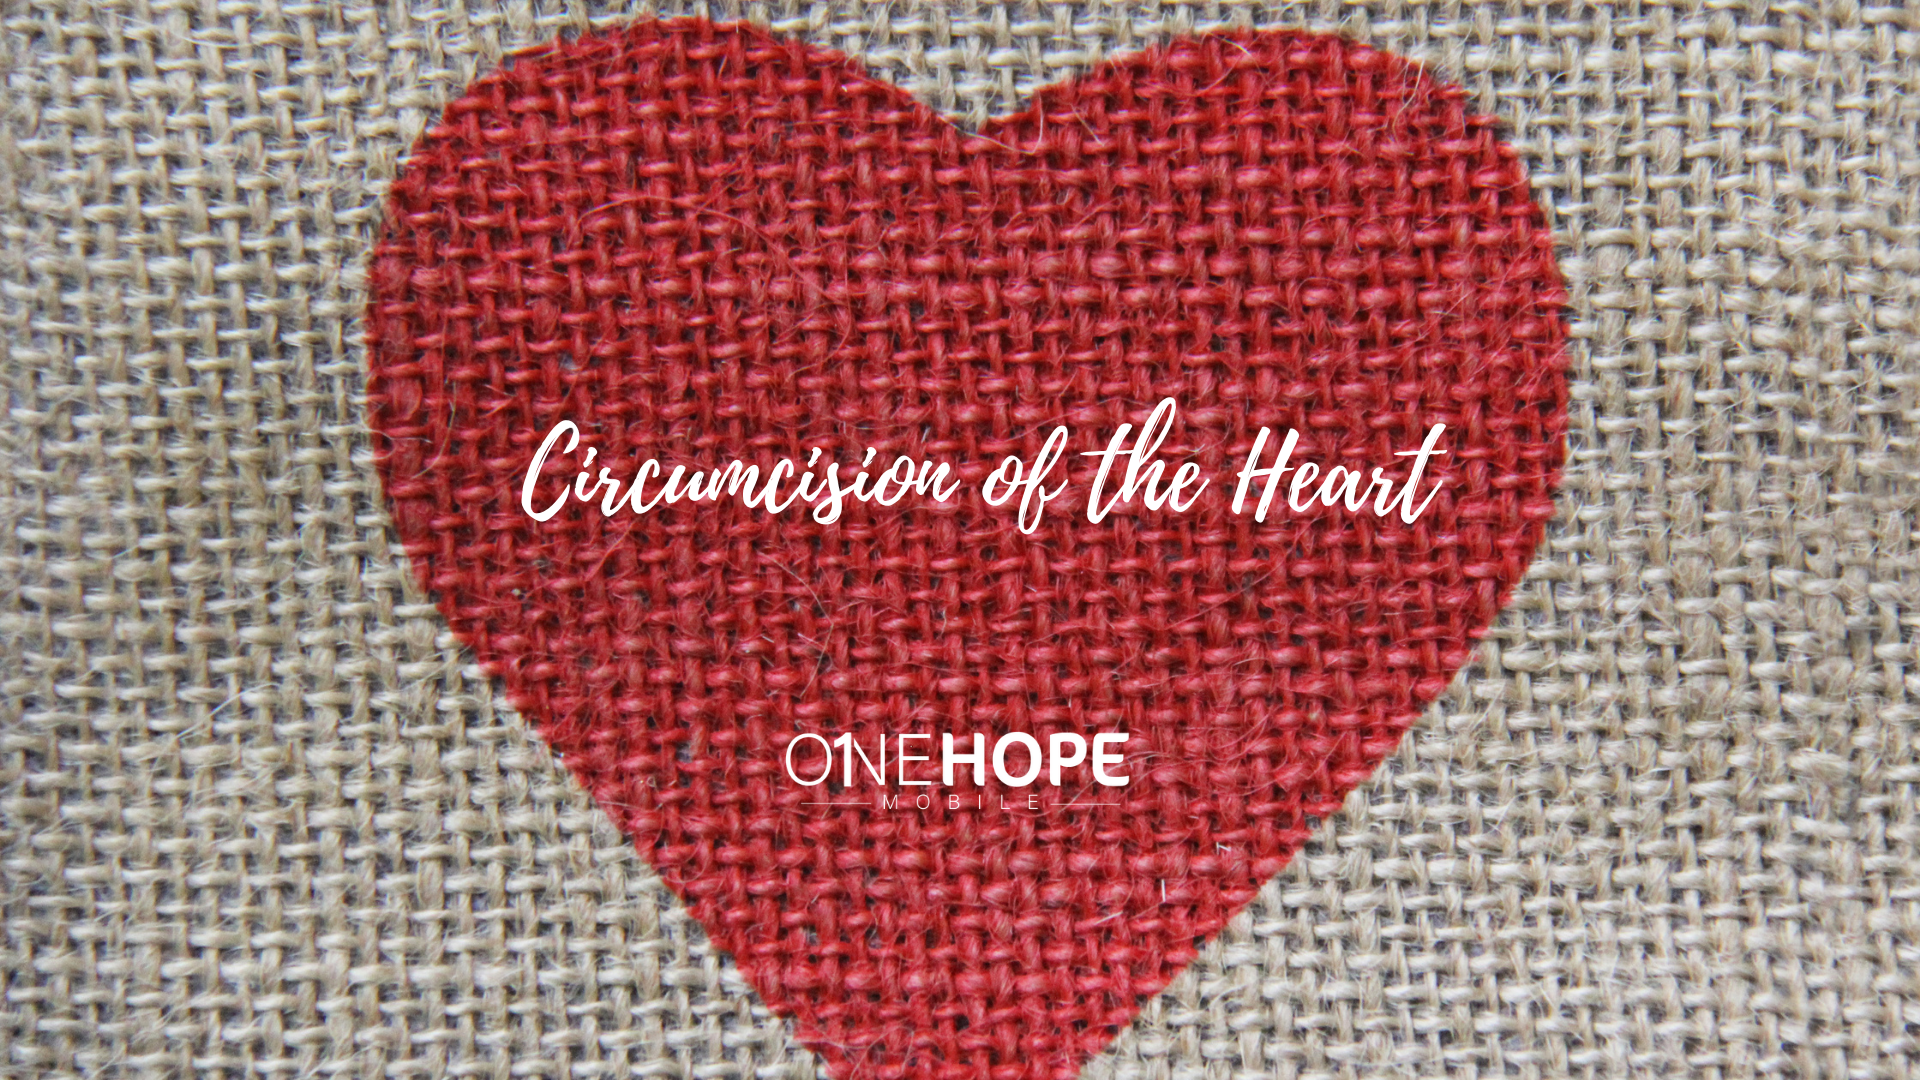 Circumcision of the Heart